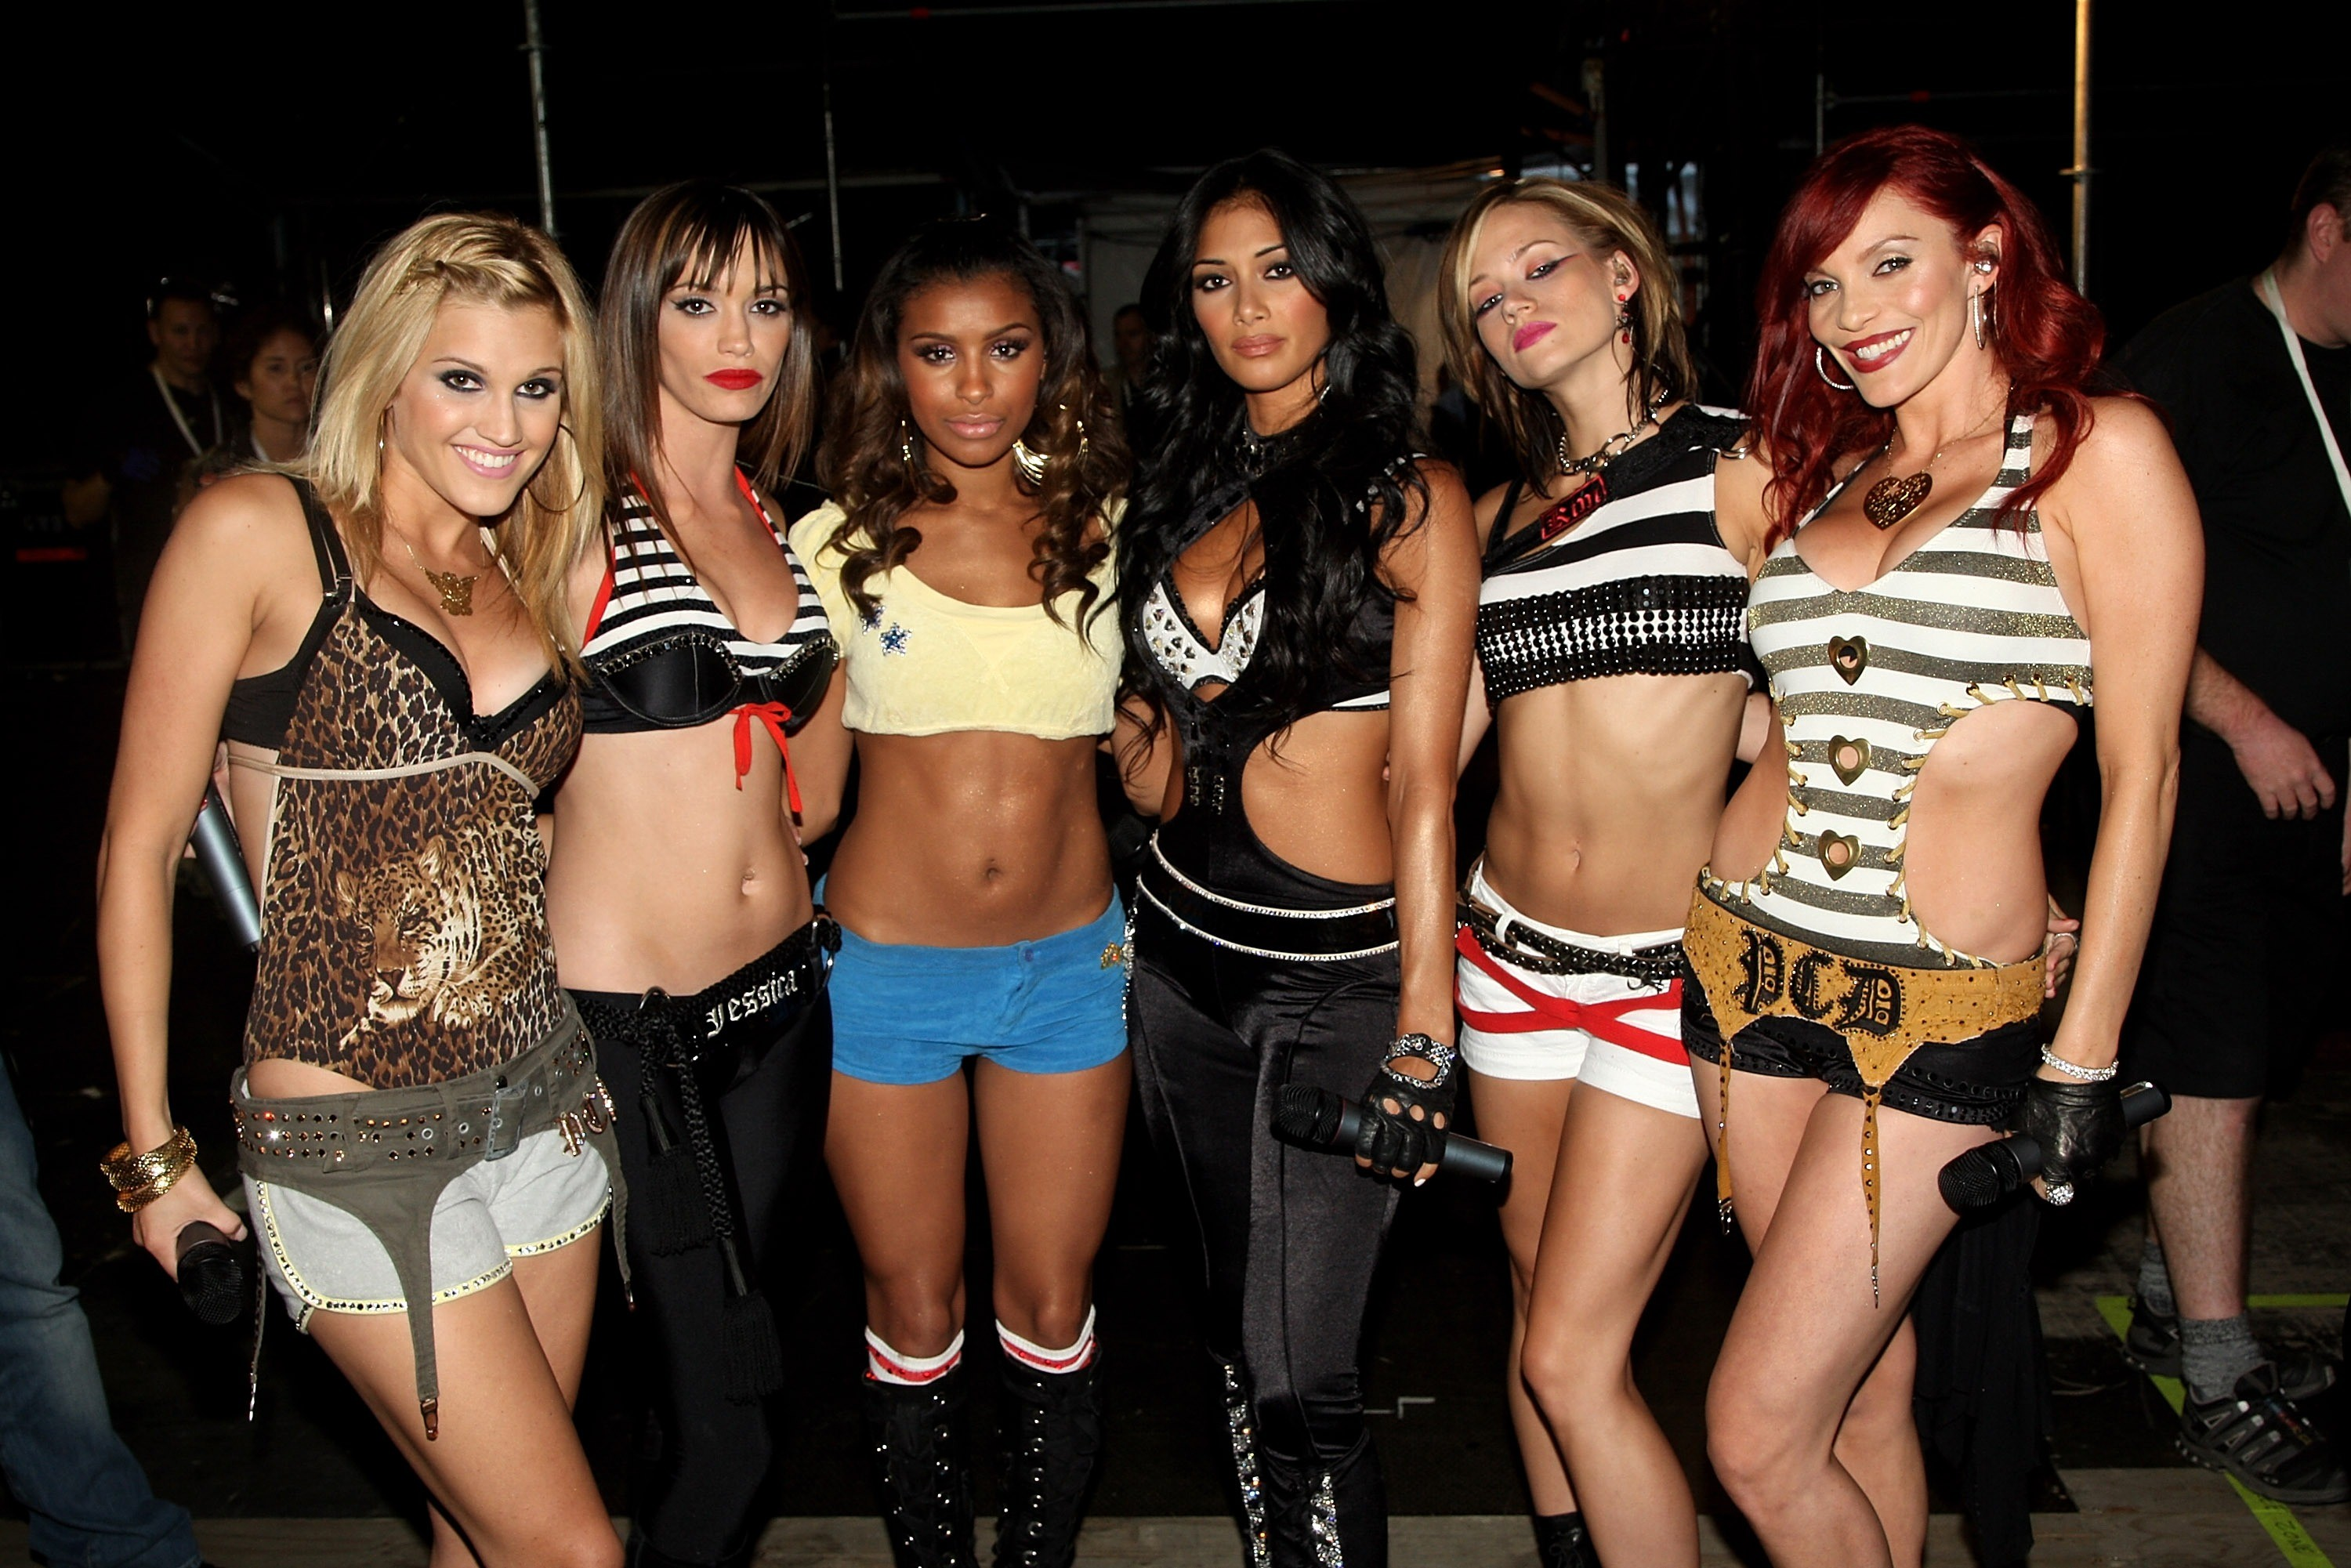 As cantoras do grupo Pussycat Dolls em foto de 2007 (Foto: Getty Images)